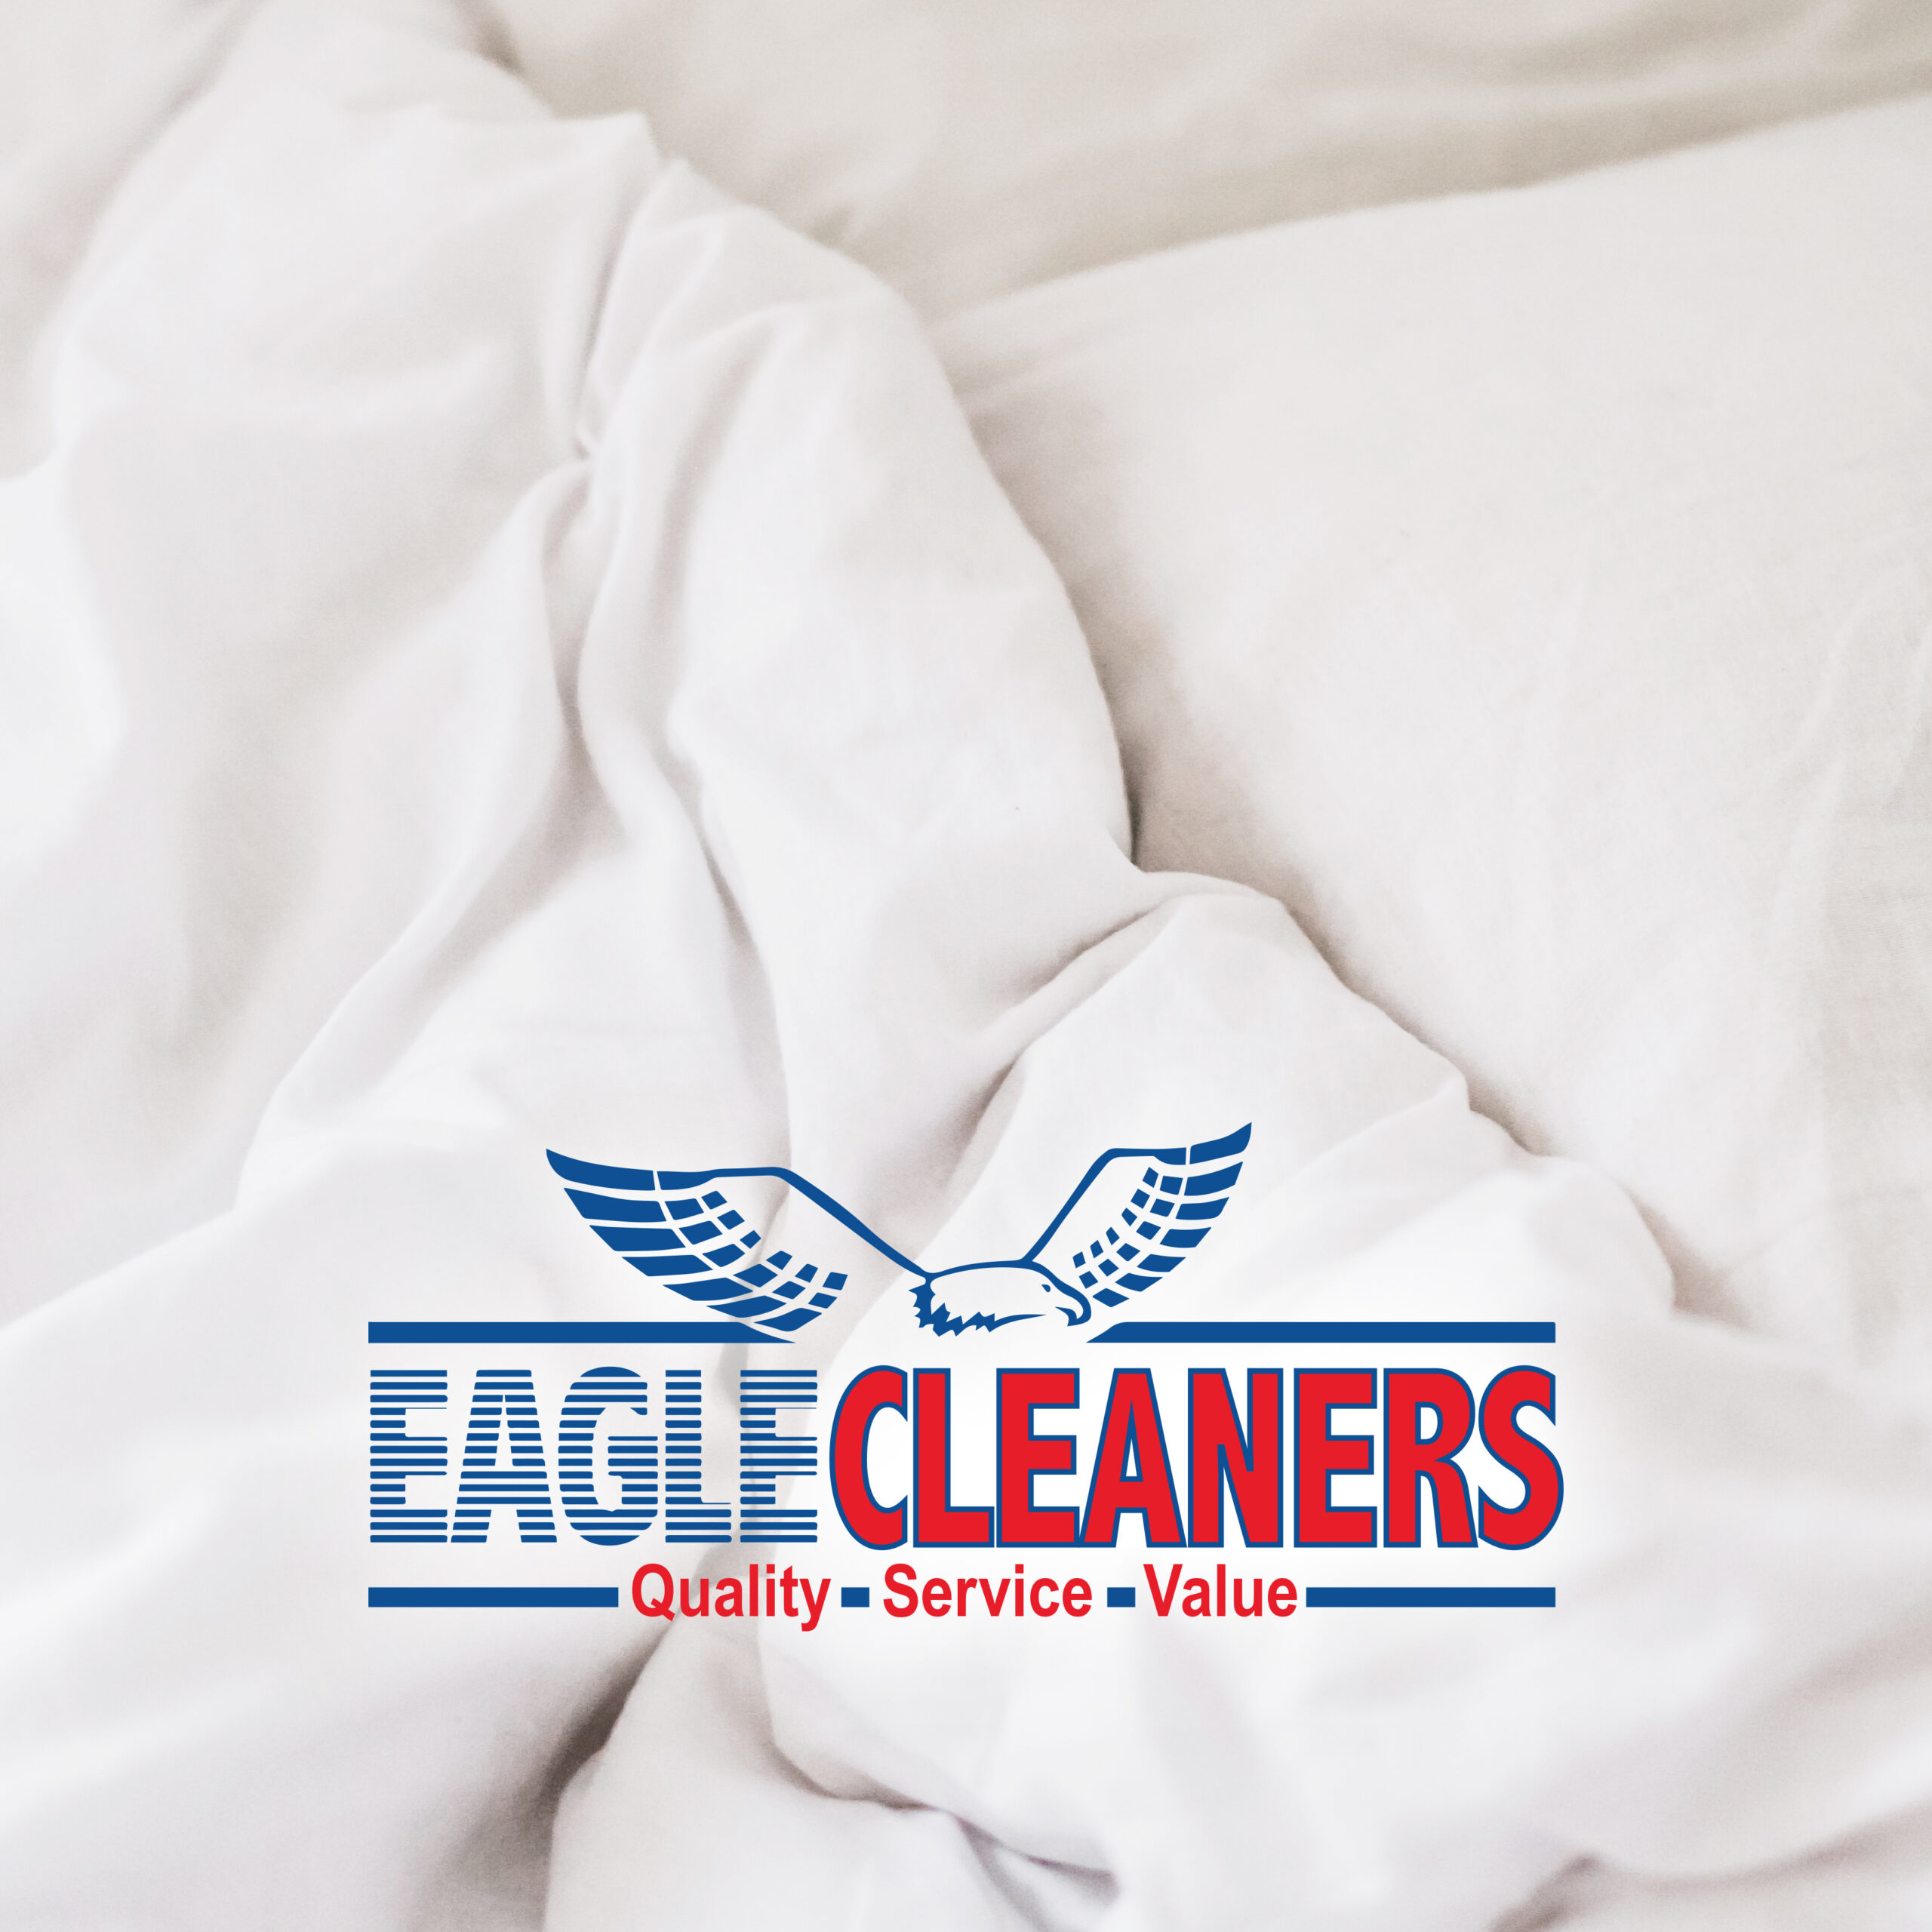 Seasonal Household Drycleaning It's important to remember to dryclean your household items when the seasons change to ensure they stay clean for your family's use. Bedroom Items Did you know that your comforters,…